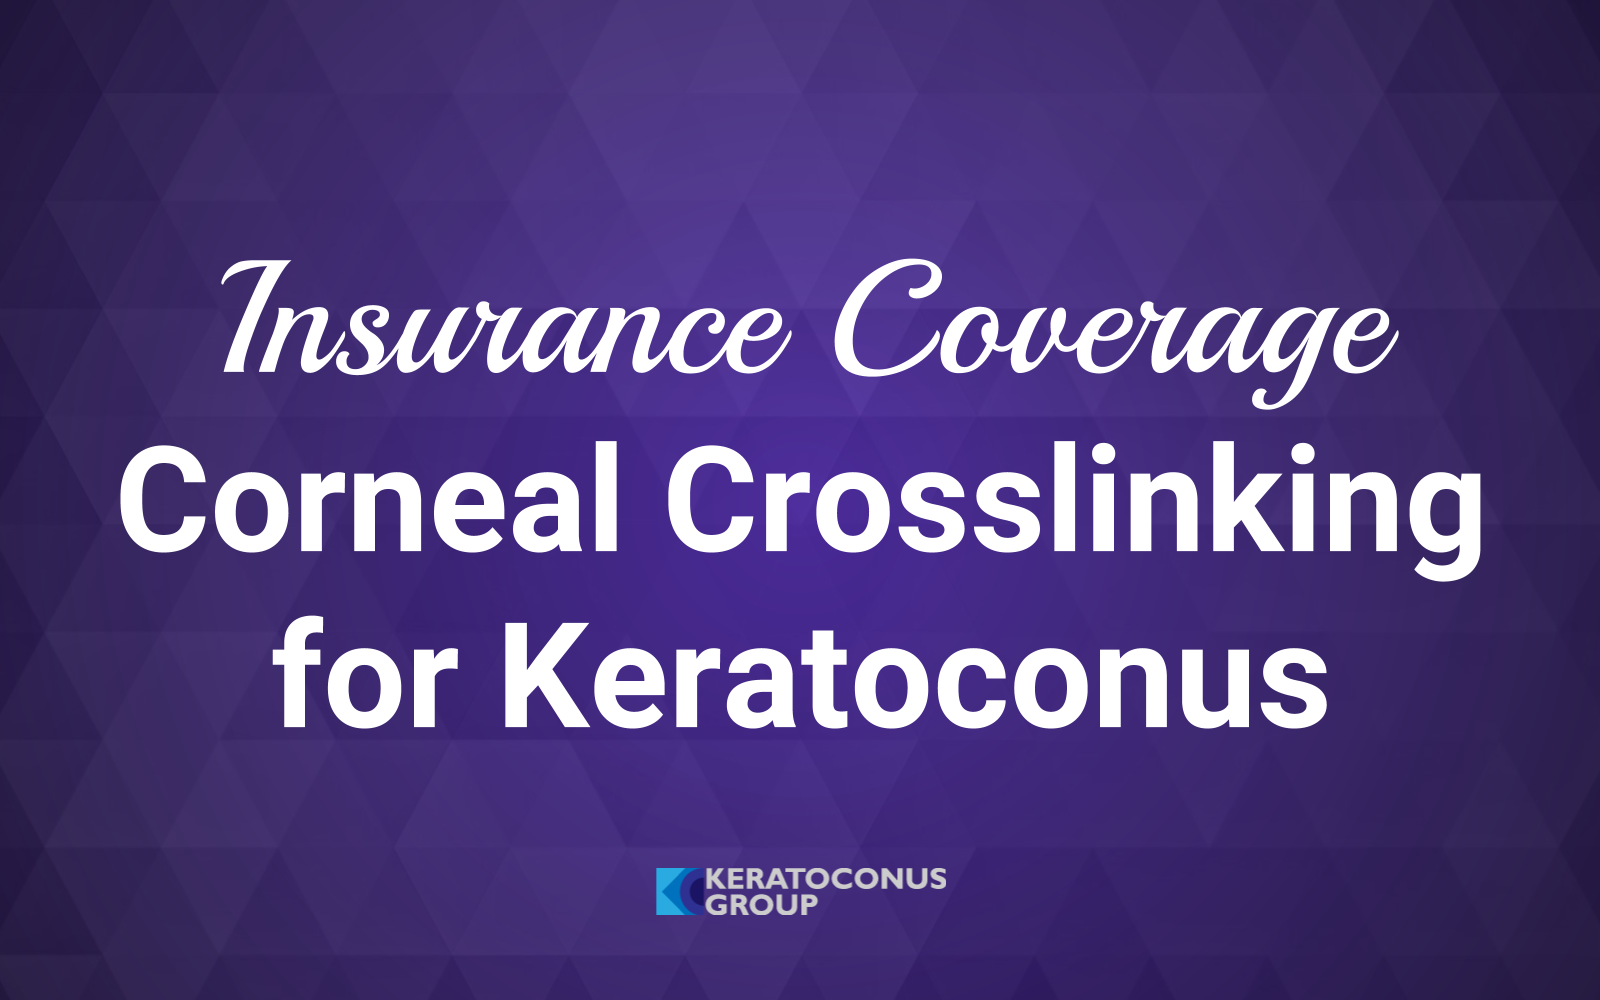 Corneal Crosslinking Insurance Coverage in the United States Jane 2018